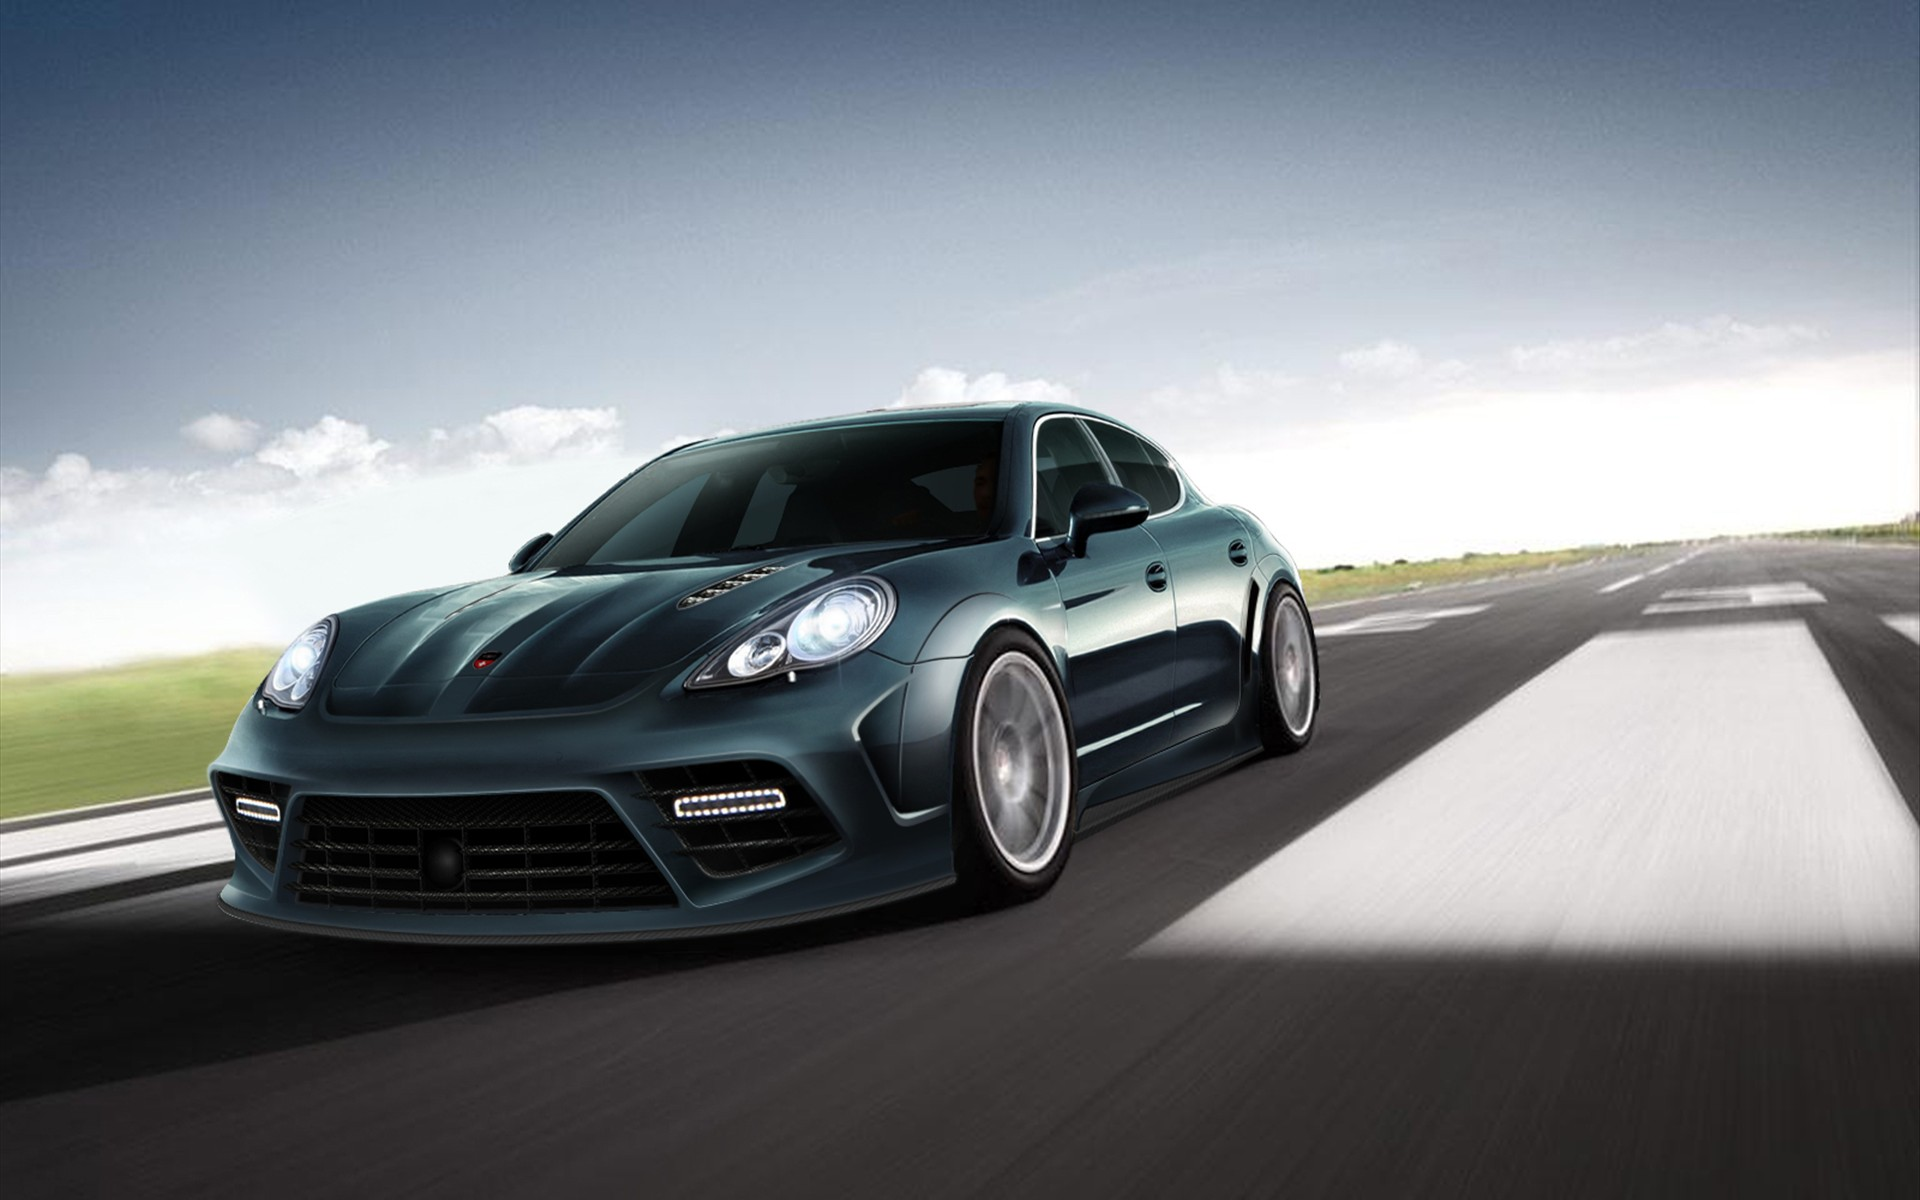 Mansory Porsche Panamera 2 Wallpaper HD Car Wallpapers 1920x1200